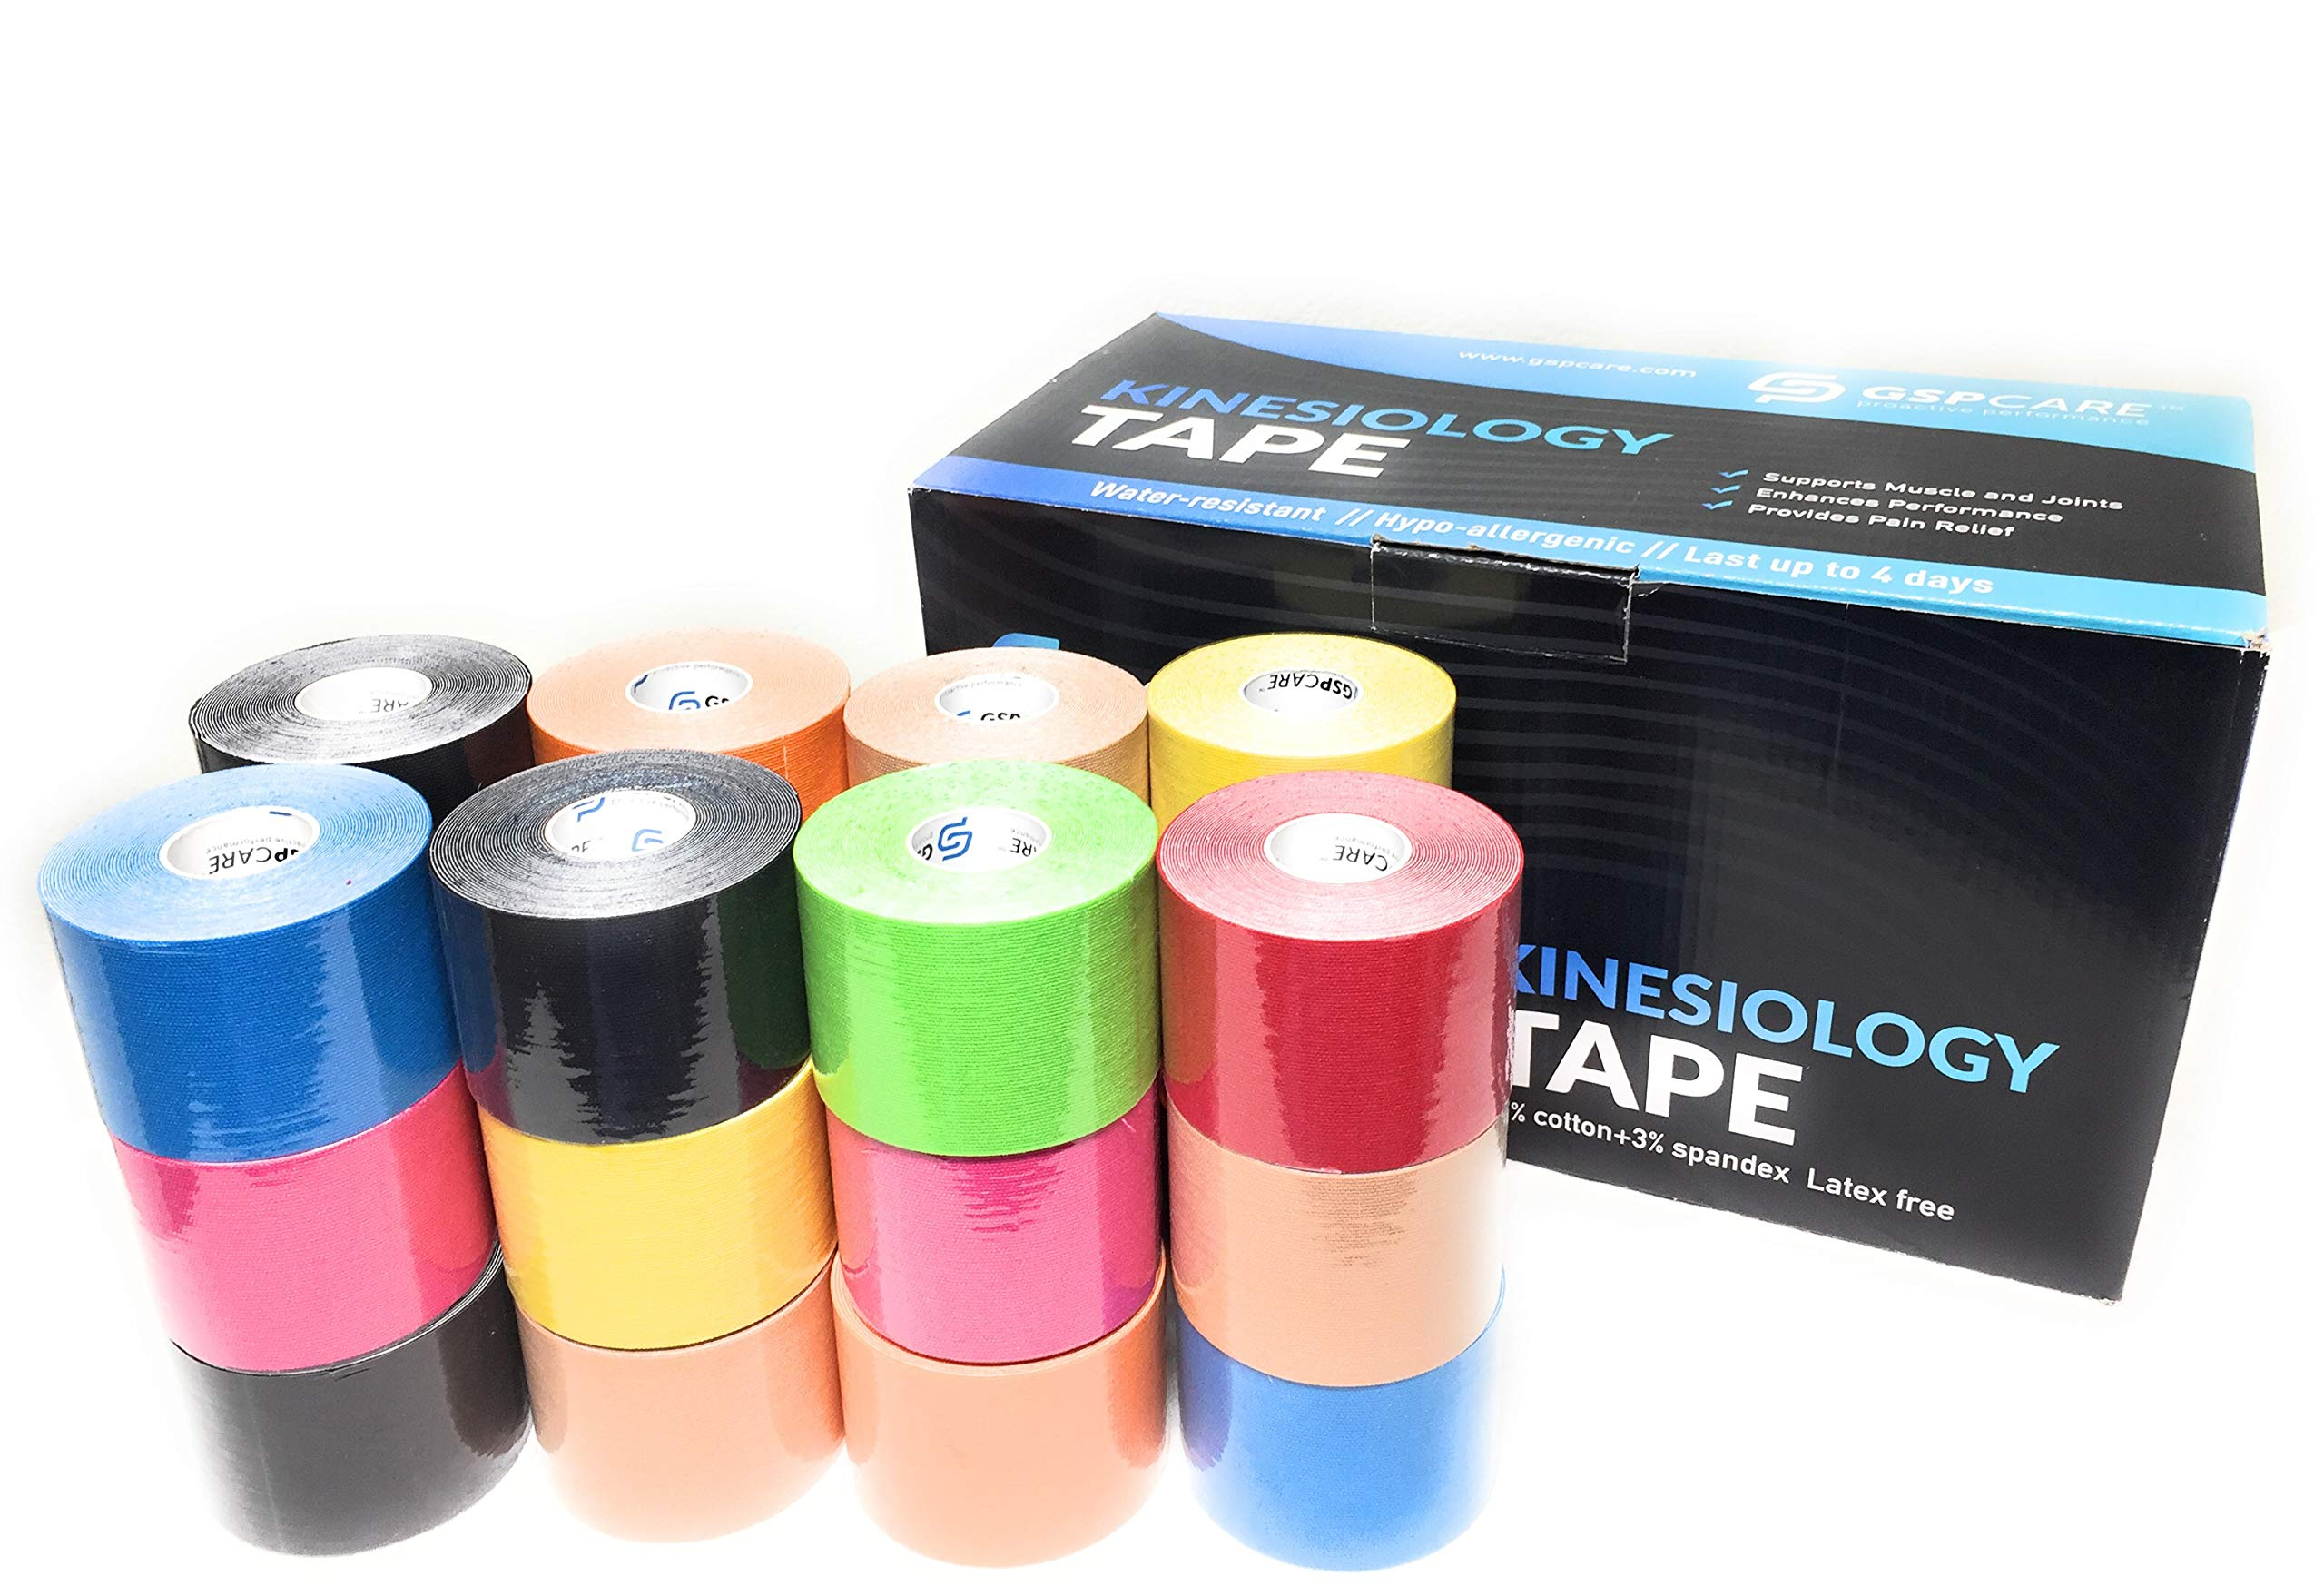 "GSPCARE Kinesiology Therapeutic Sports Tape for Pain Relief, Muscle & Joint Support, Latex Free, Water Resistance, Standard 2""x16.4' Uncut 24 Rolls, Colors Vary (24)"